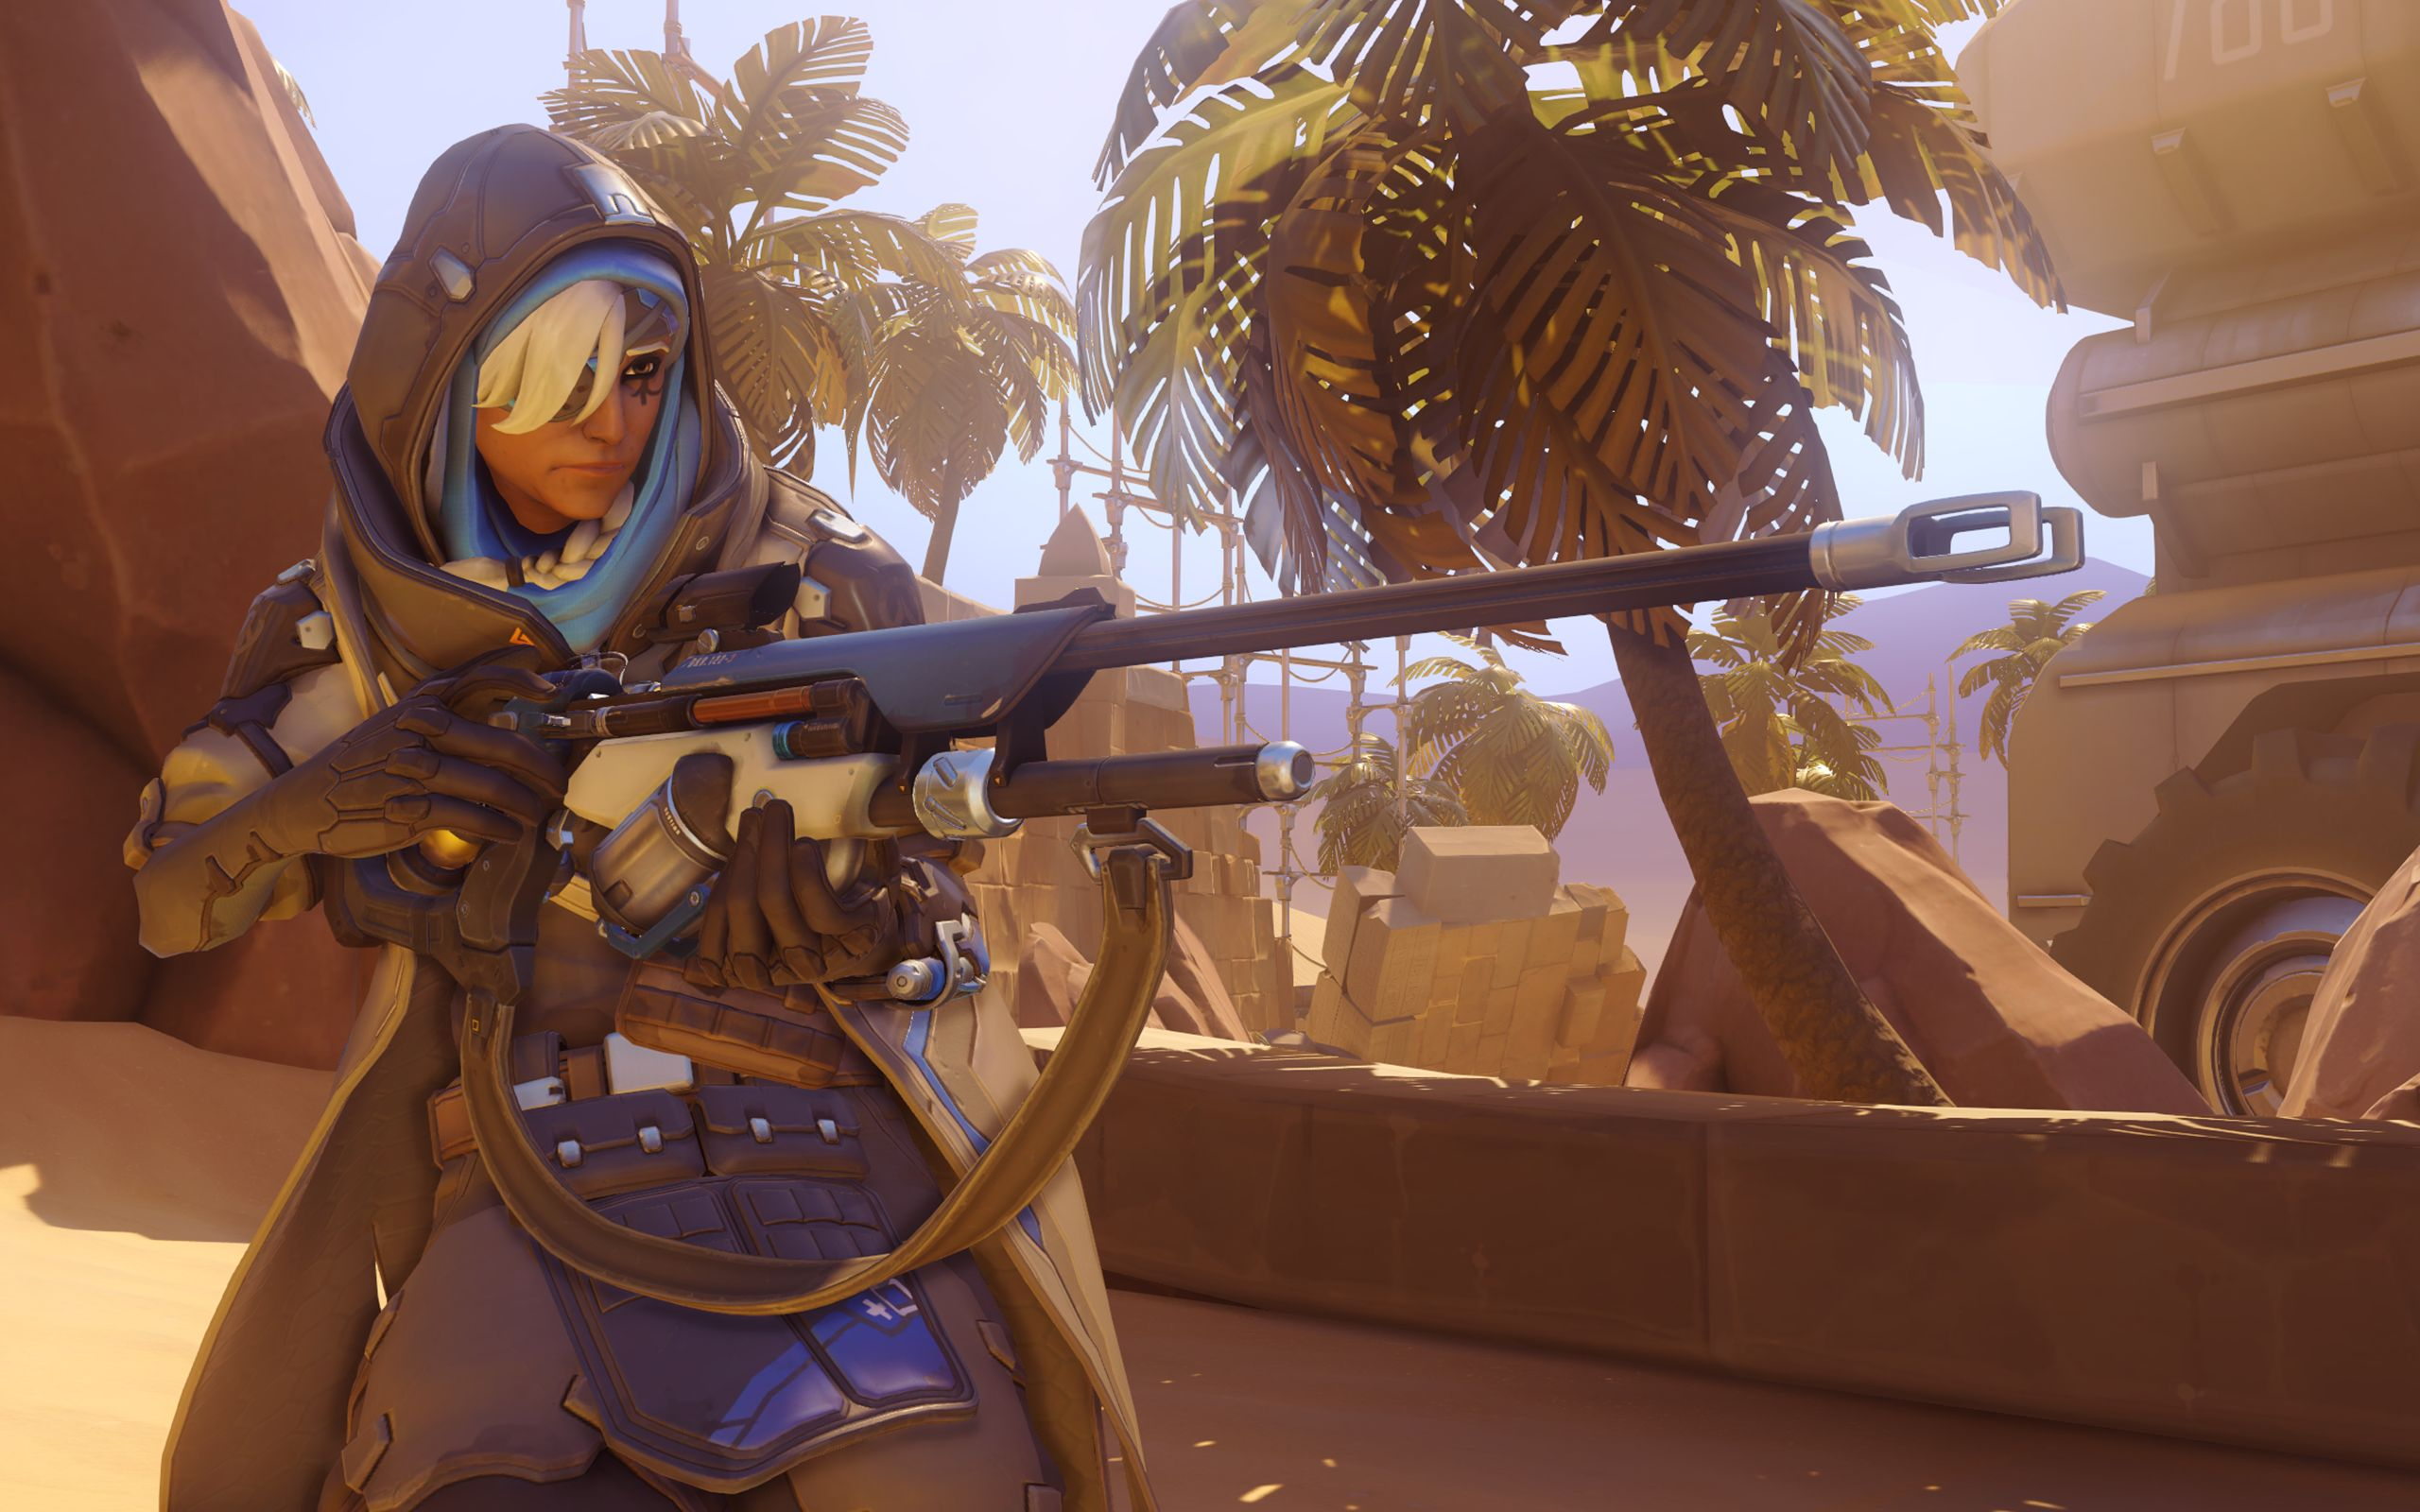 Overwatch Ana Hd Wallpapers 7wallpapersnet